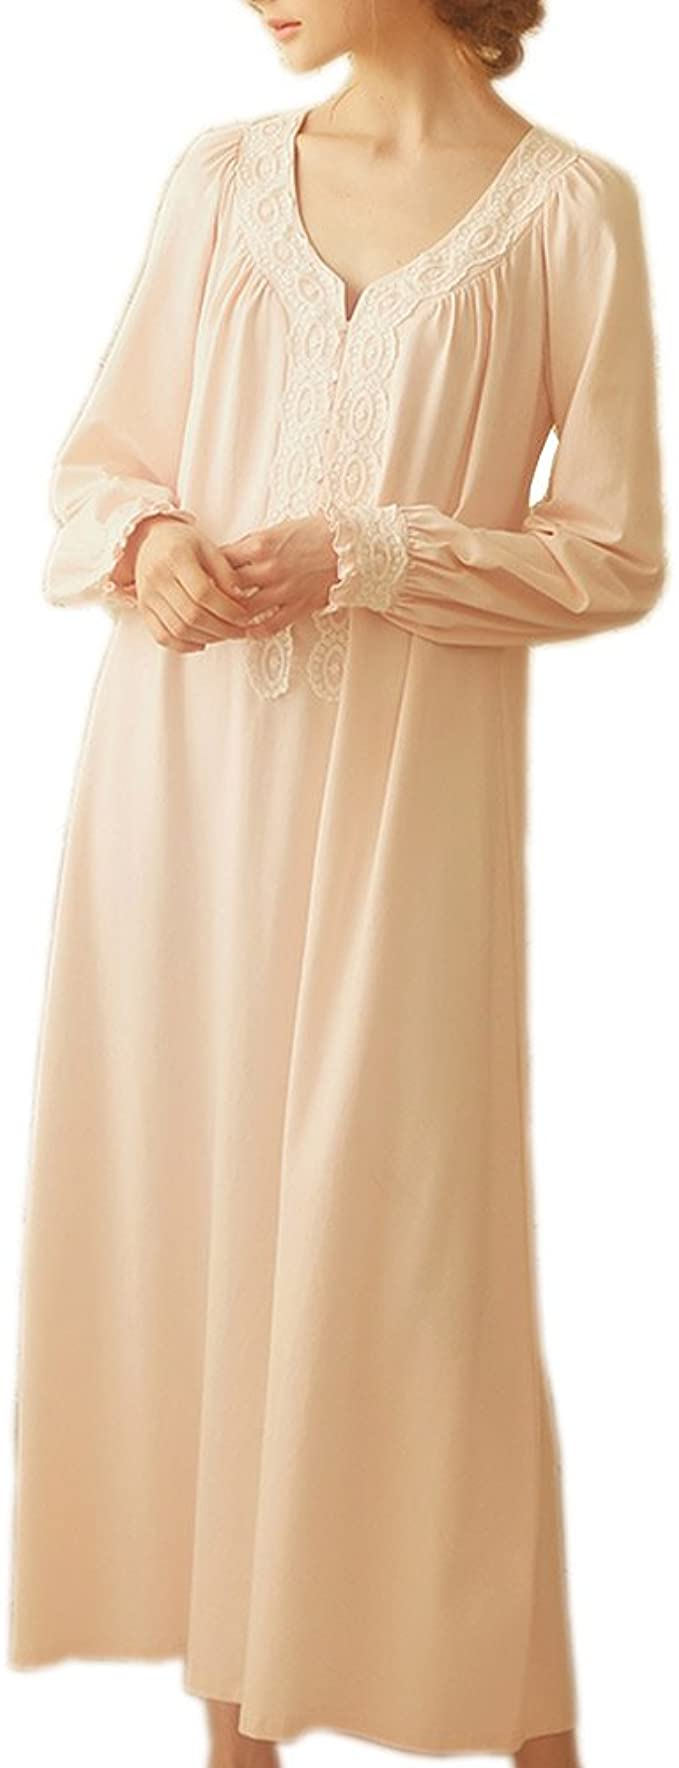 1920s Style Underwear, Lingerie, Nightgowns, Pajamas Women Victorian Nightgown Vintage Cotton Sleepwear Long Nightrobe Pajamas Loungewear $34.99 AT vintagedancer.com